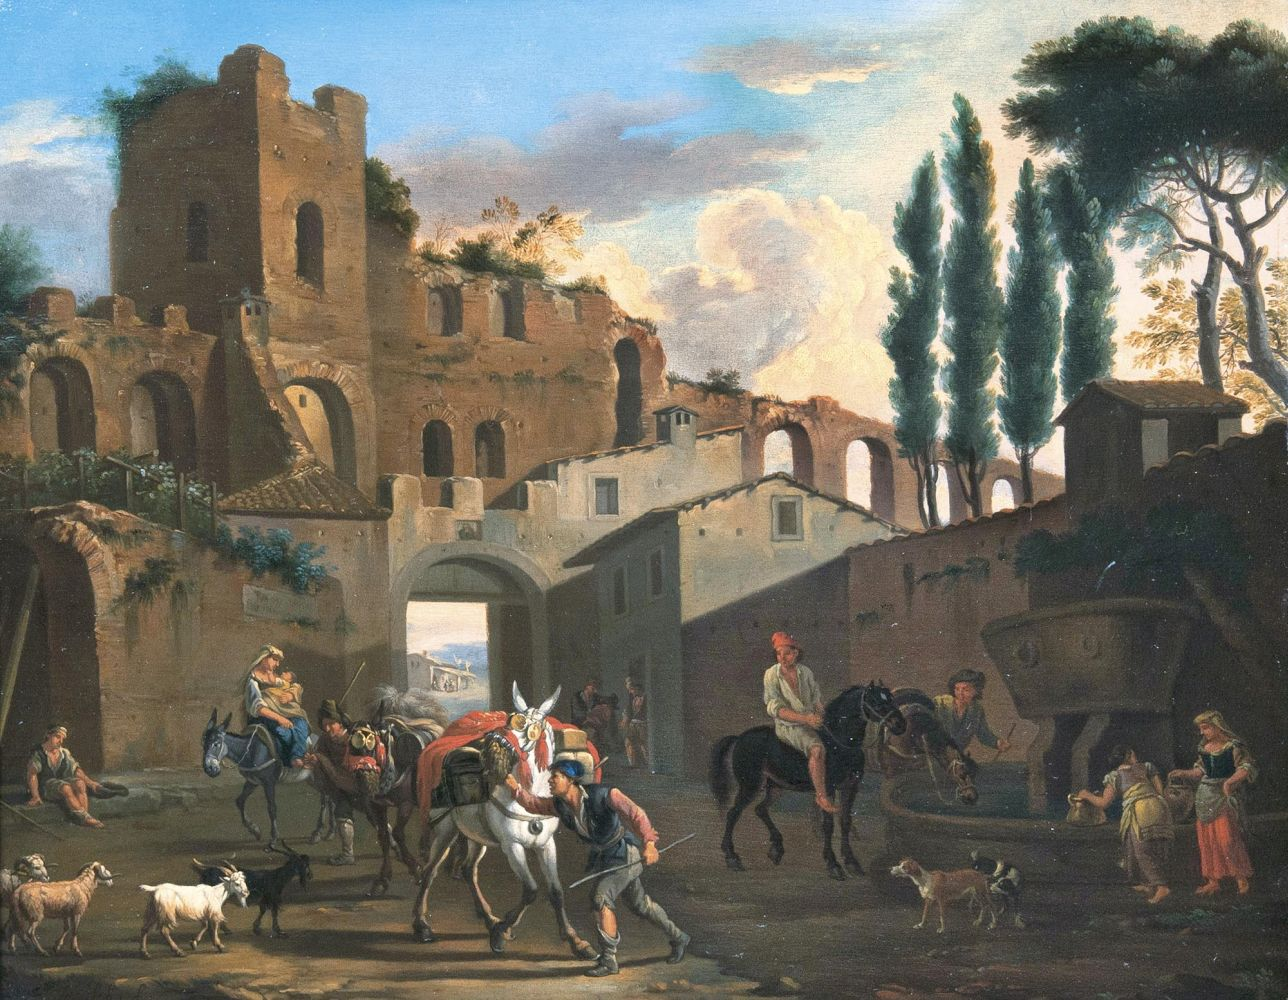 Ruins with Riders and Pack animals